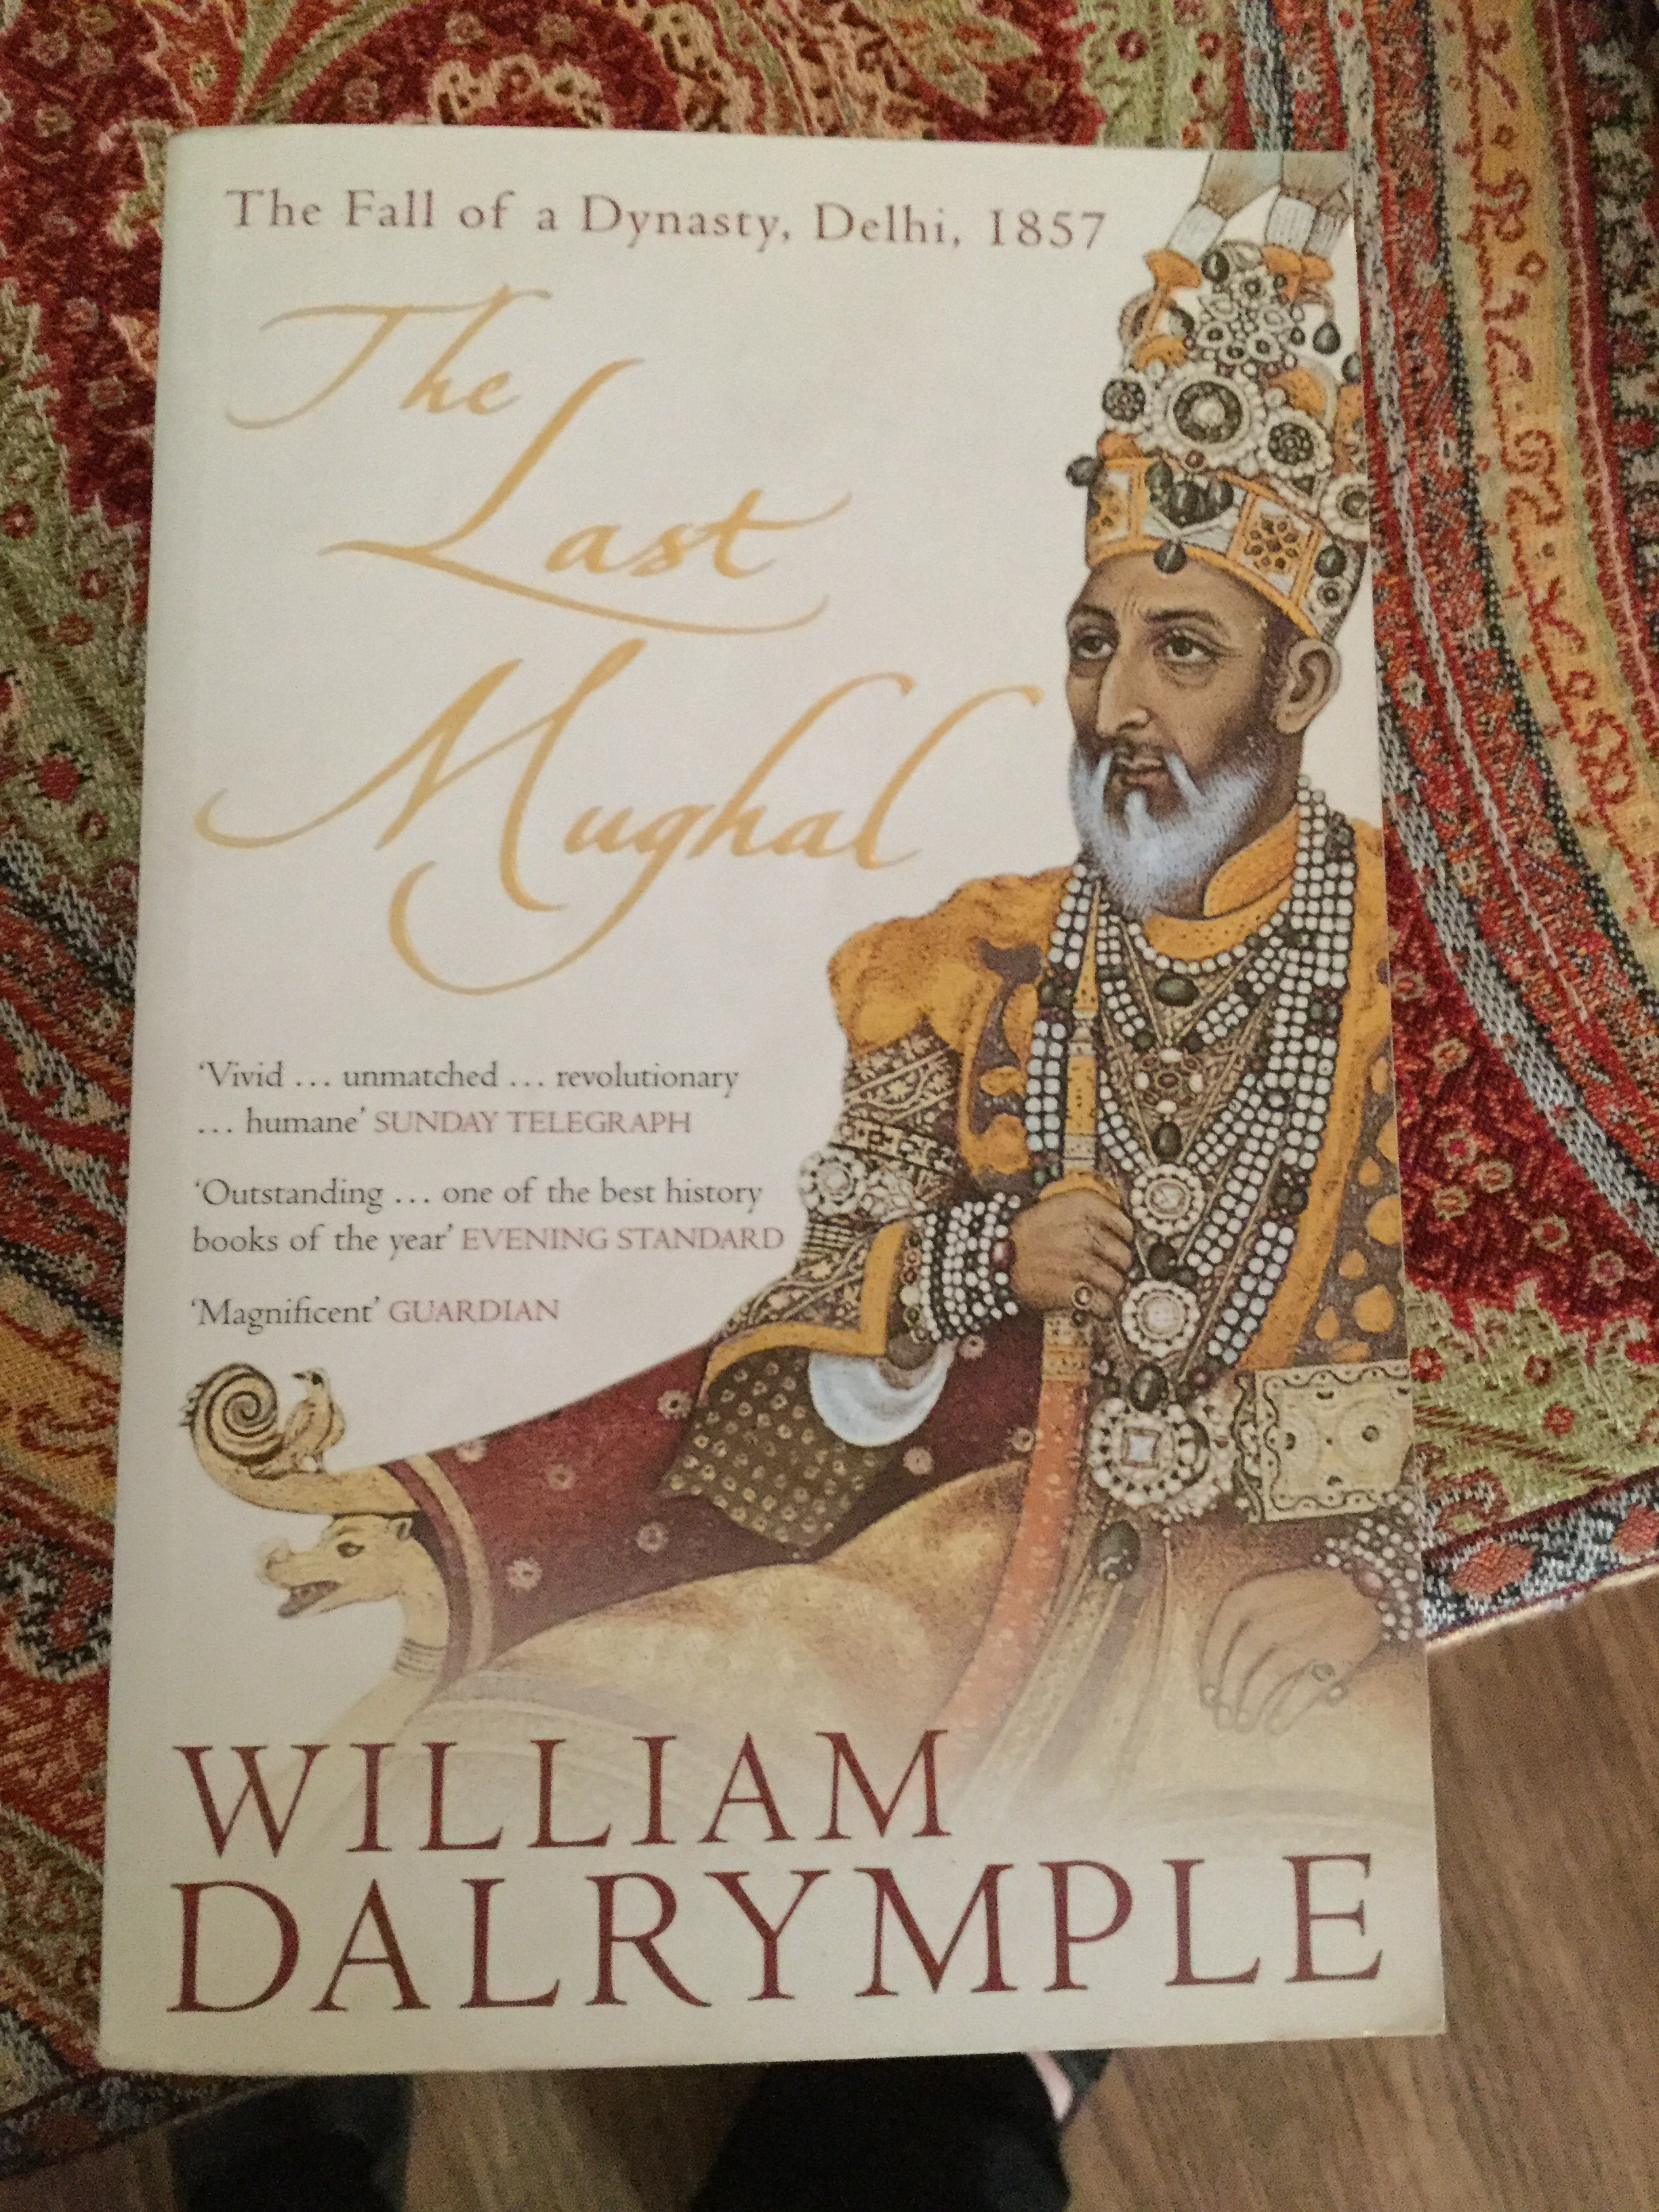 The Last Mughal : The Fall of a Dynasty, Delhi, 1857